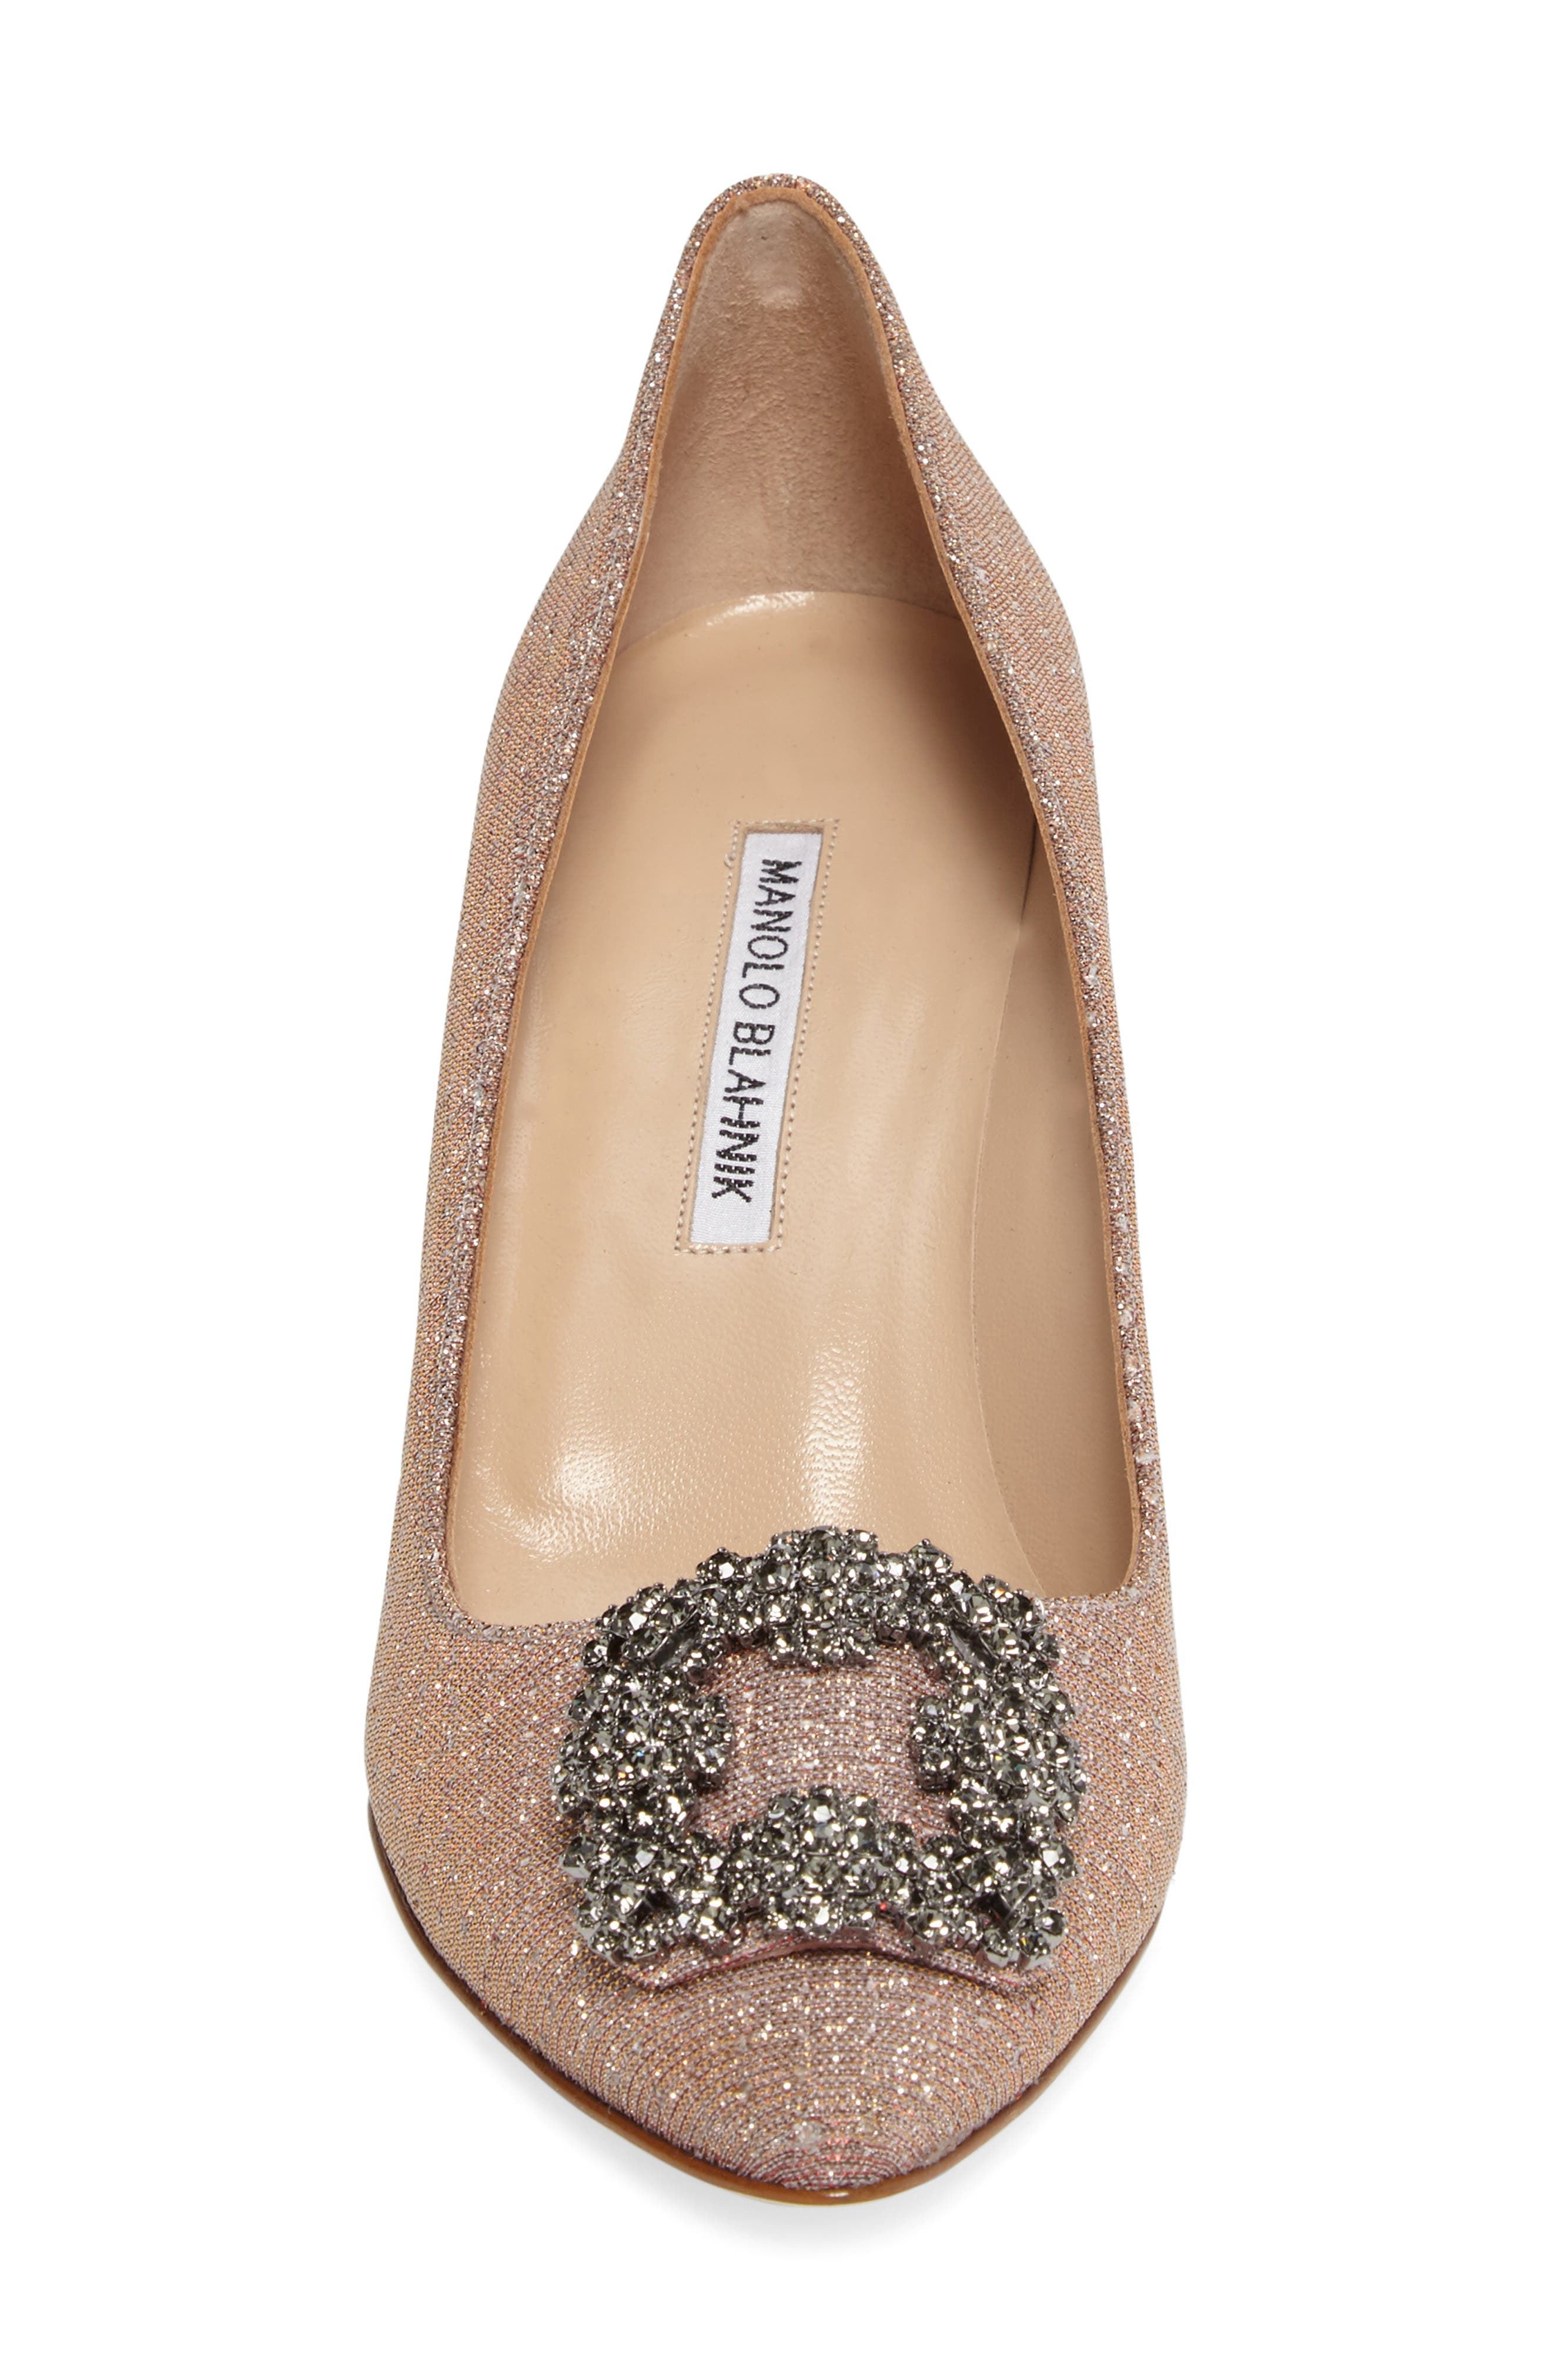 Hangisi Pump,                             Alternate thumbnail 4, color,                             Champagne Fabric